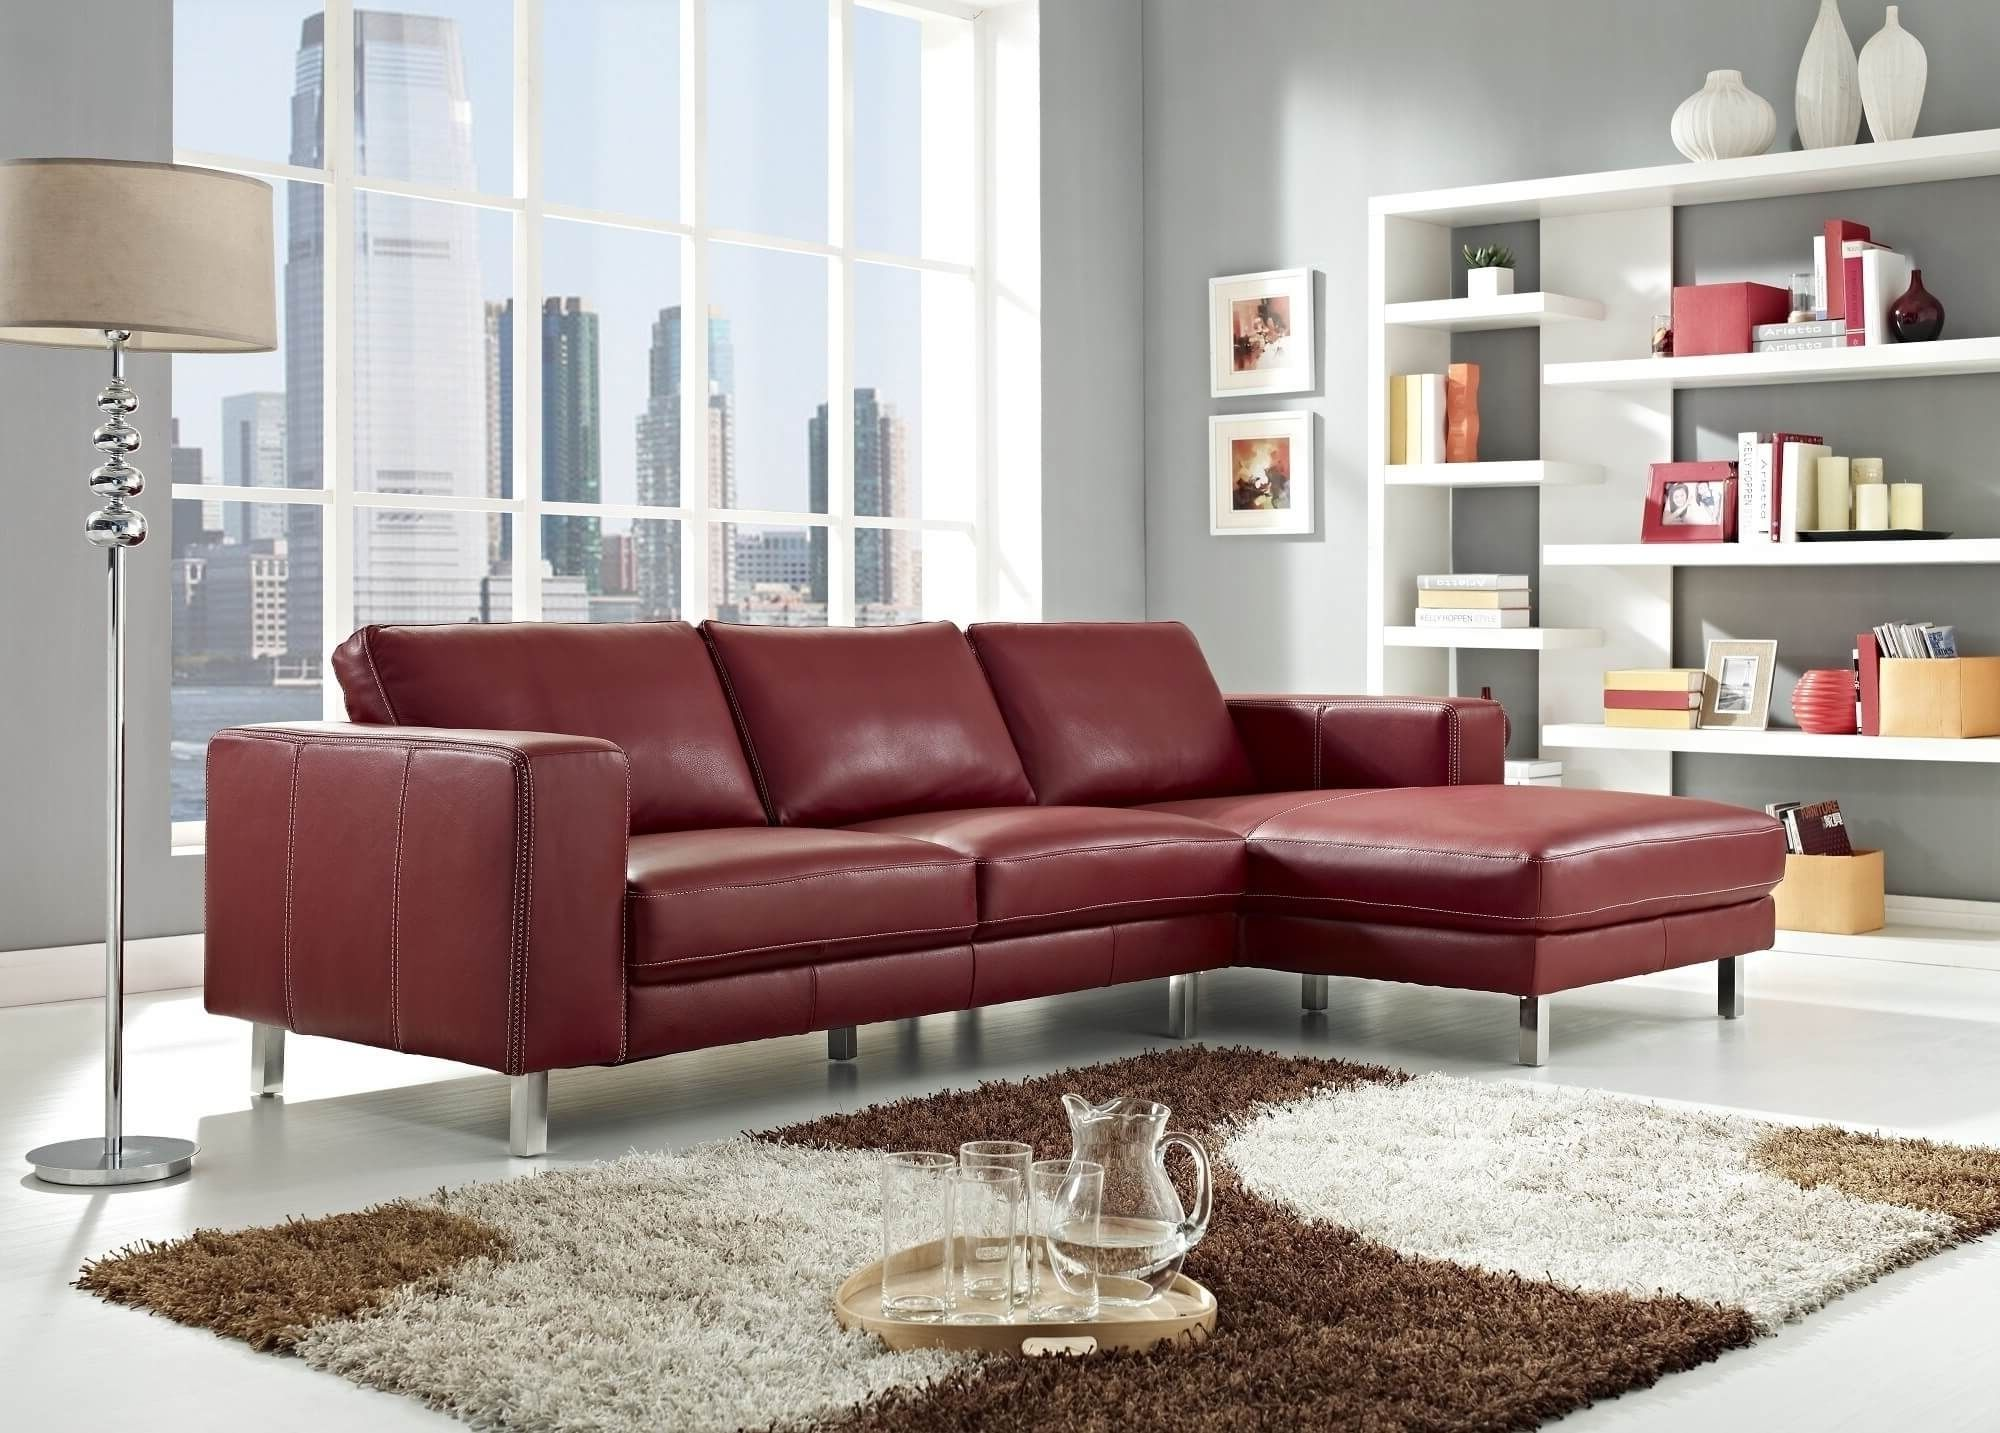 best of 7 seat sectional sofa image-Latest 7 Seat Sectional sofa Image